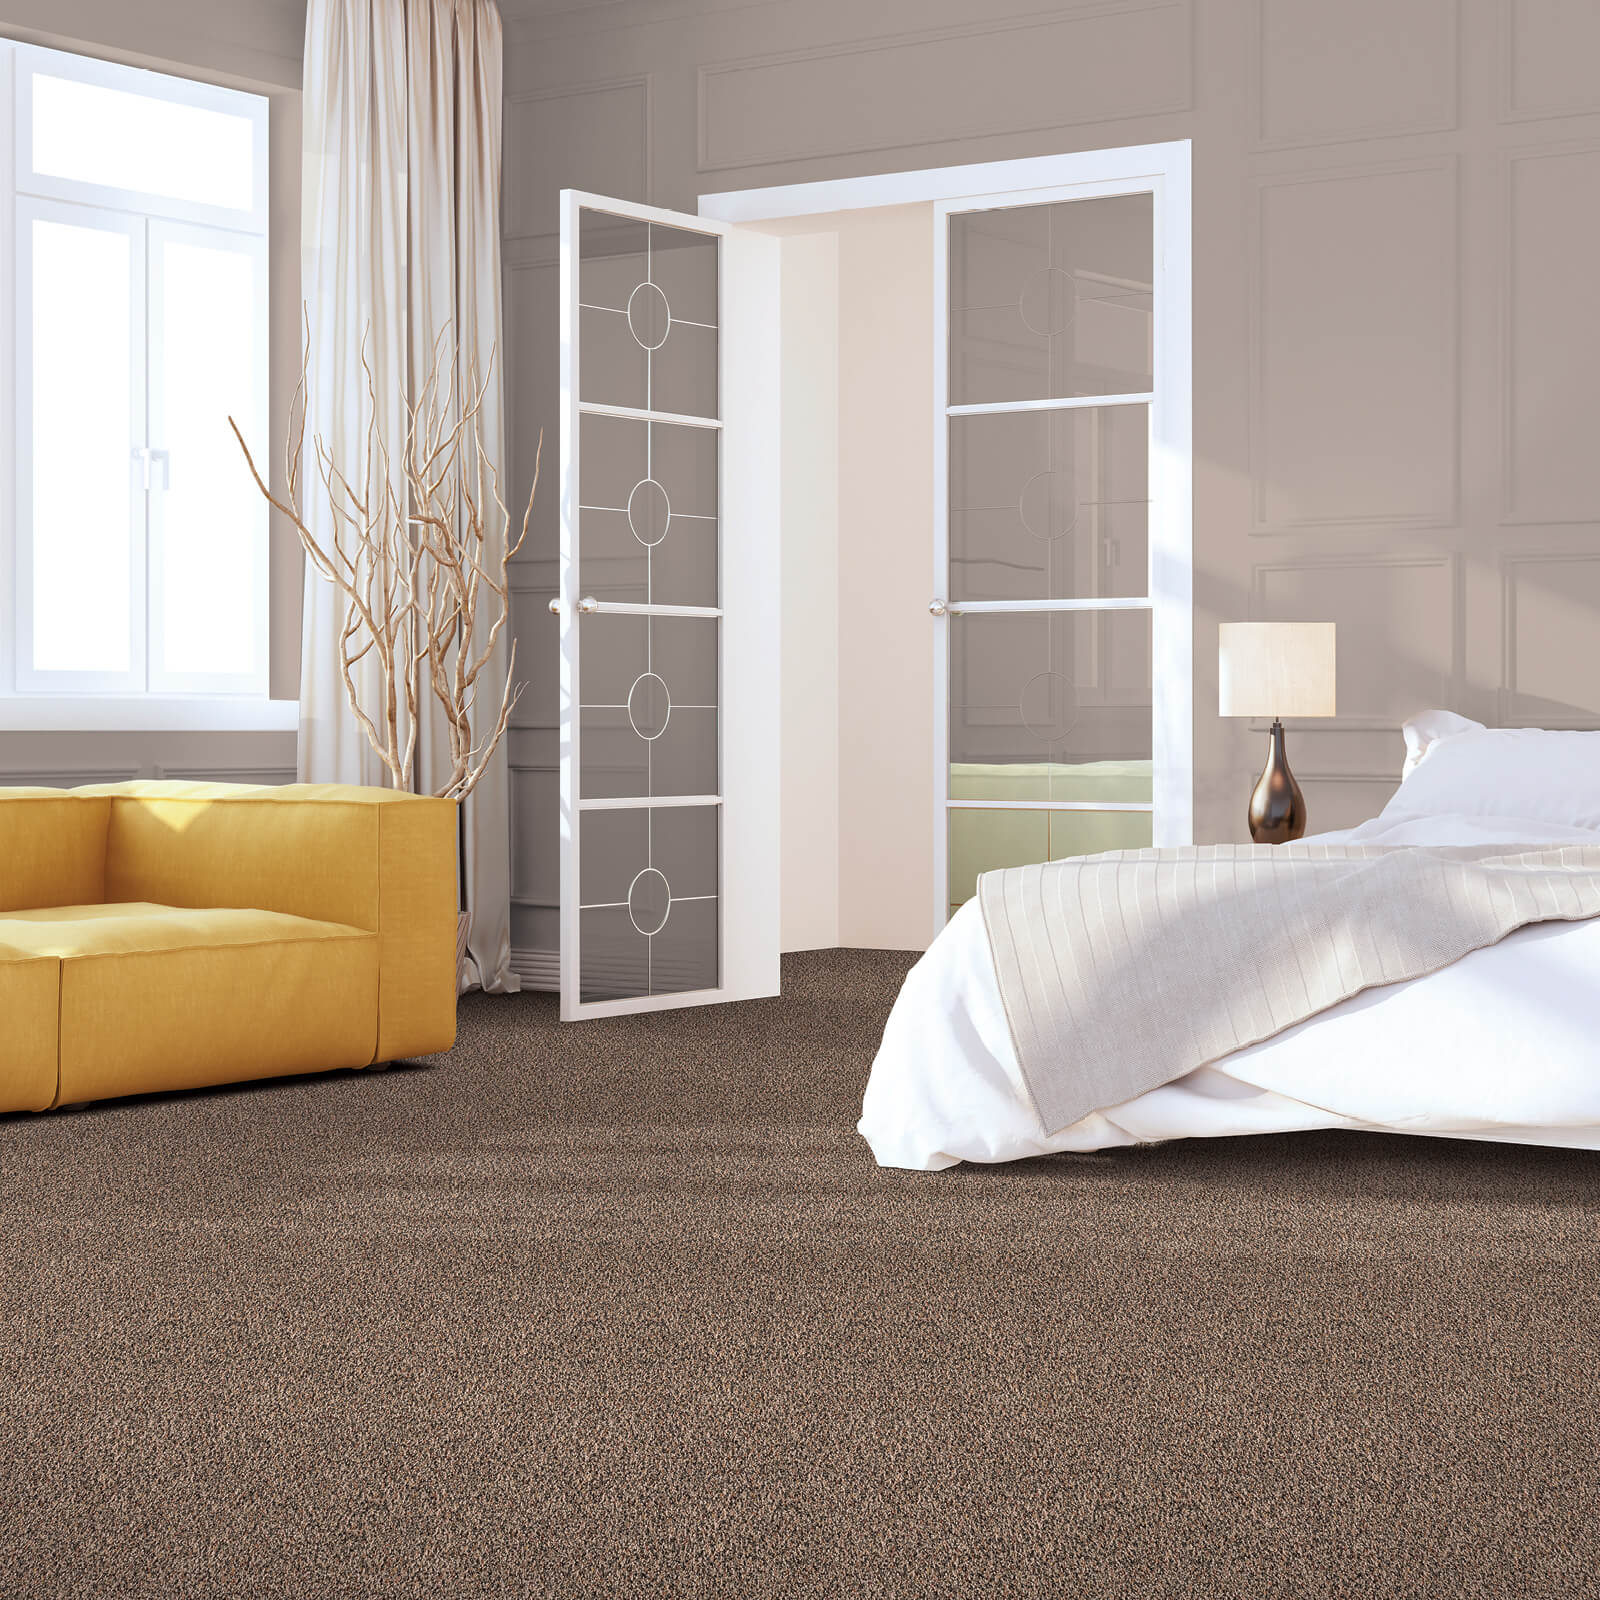 Bedroom Carpet | Floorida Floors